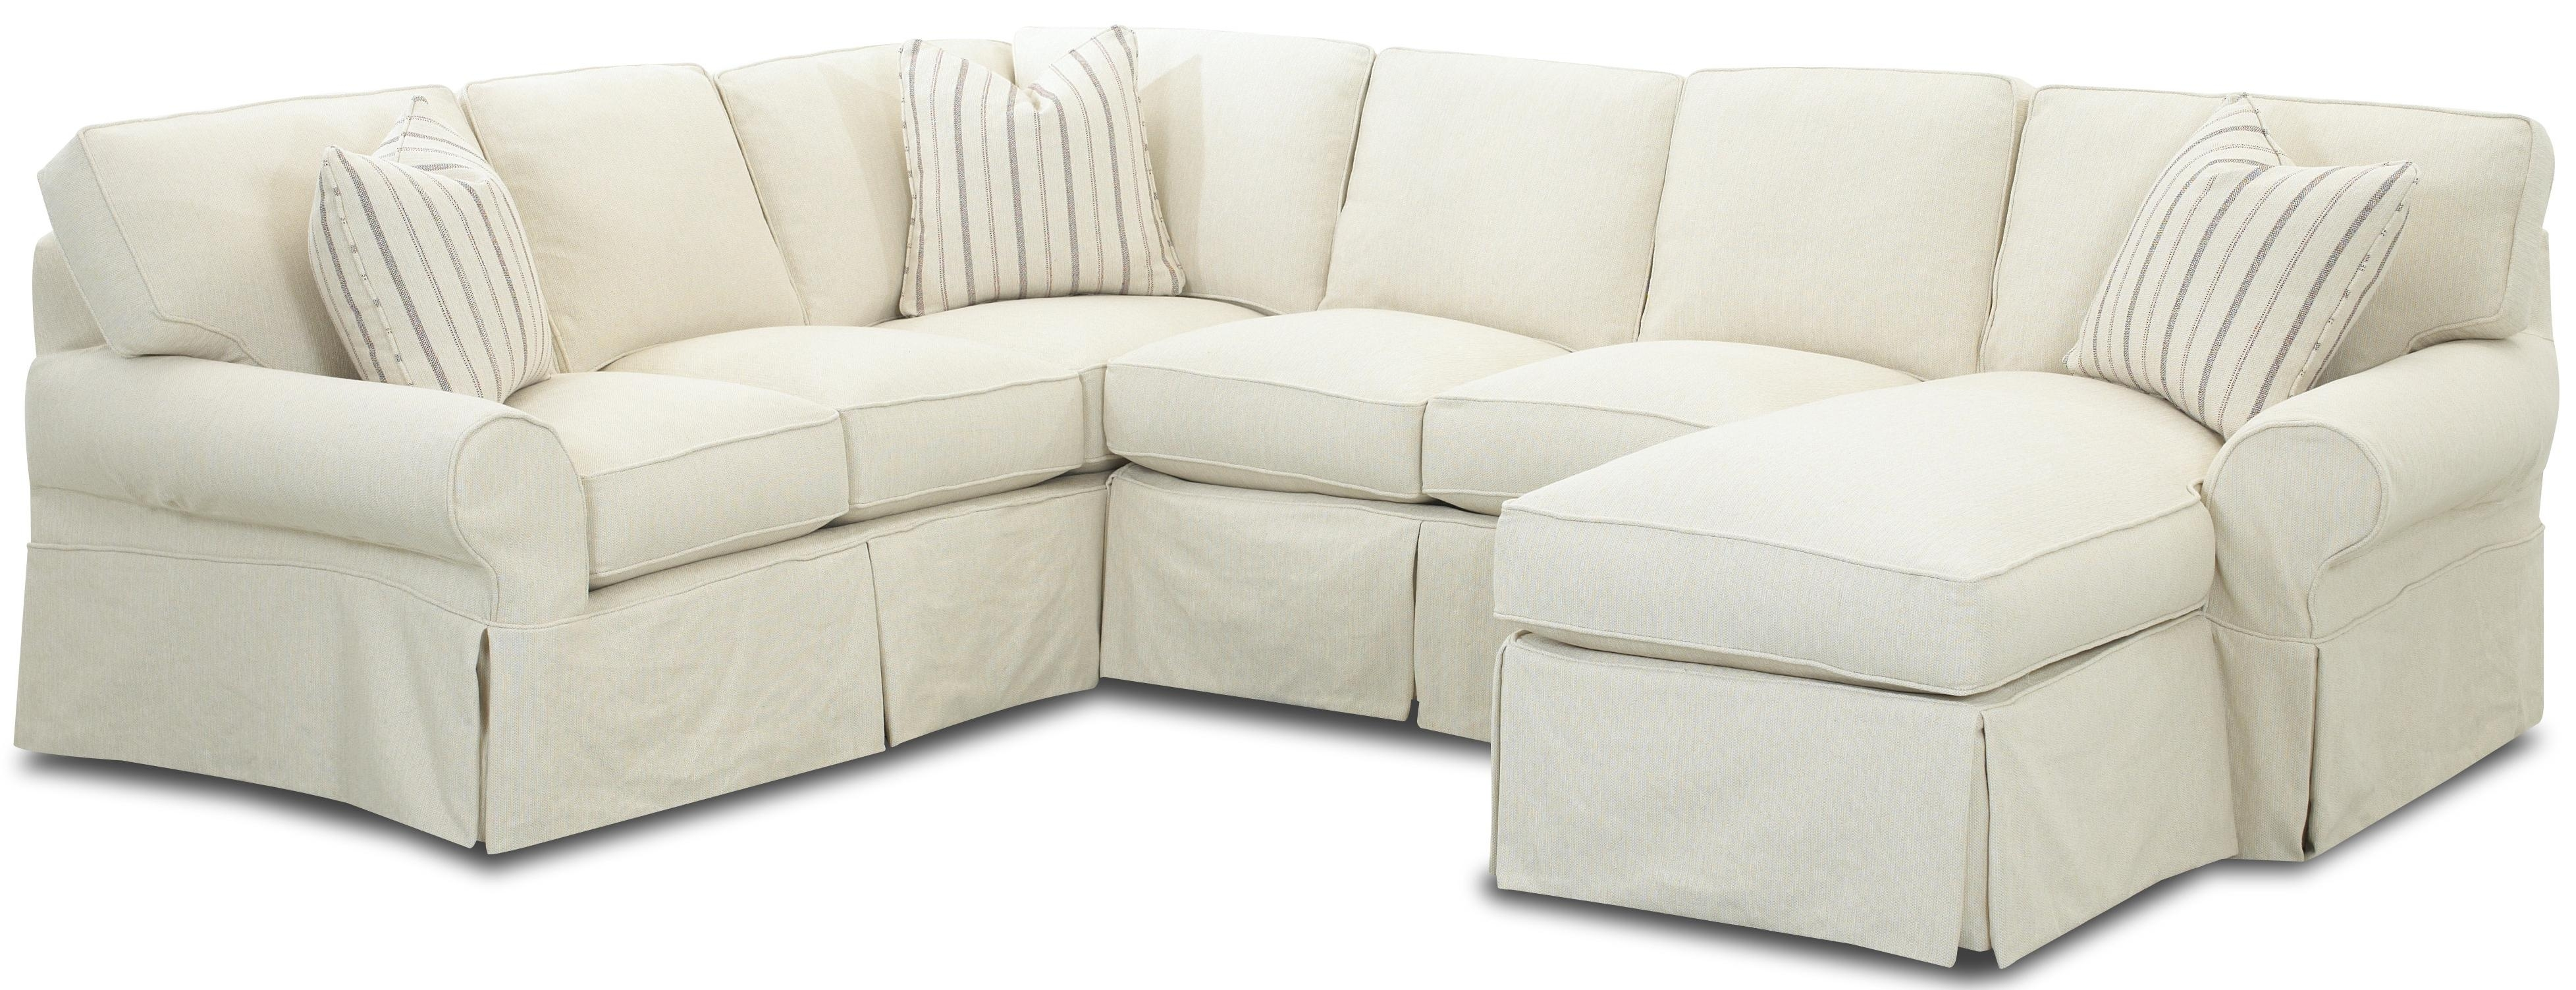 Sectional Sofa Covers | Aifaresidency pertaining to Sectional Sofas With Covers (Image 10 of 15)